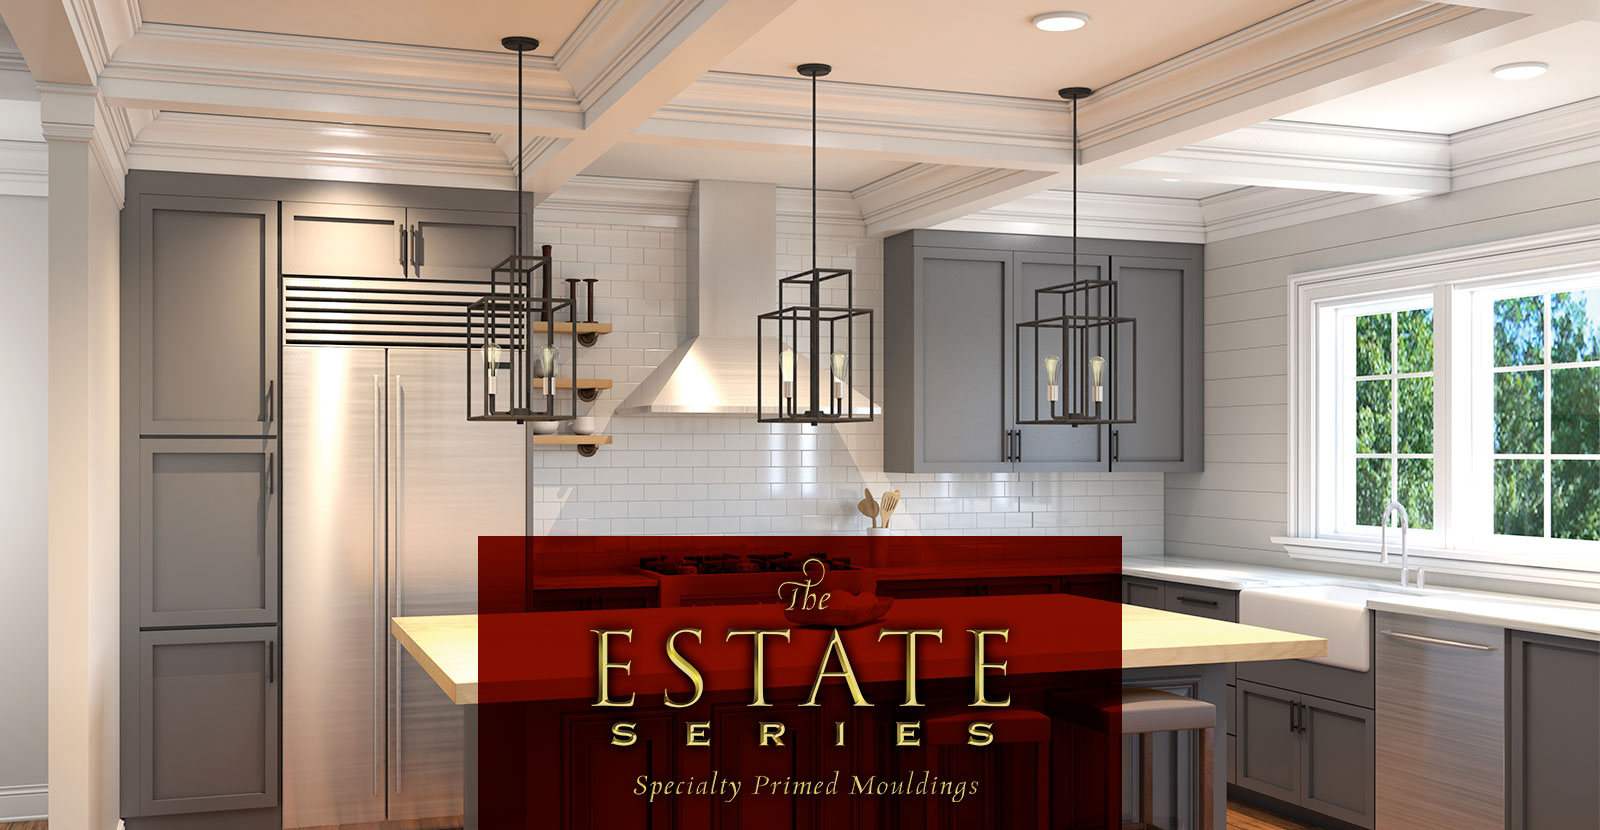 The Estate Series